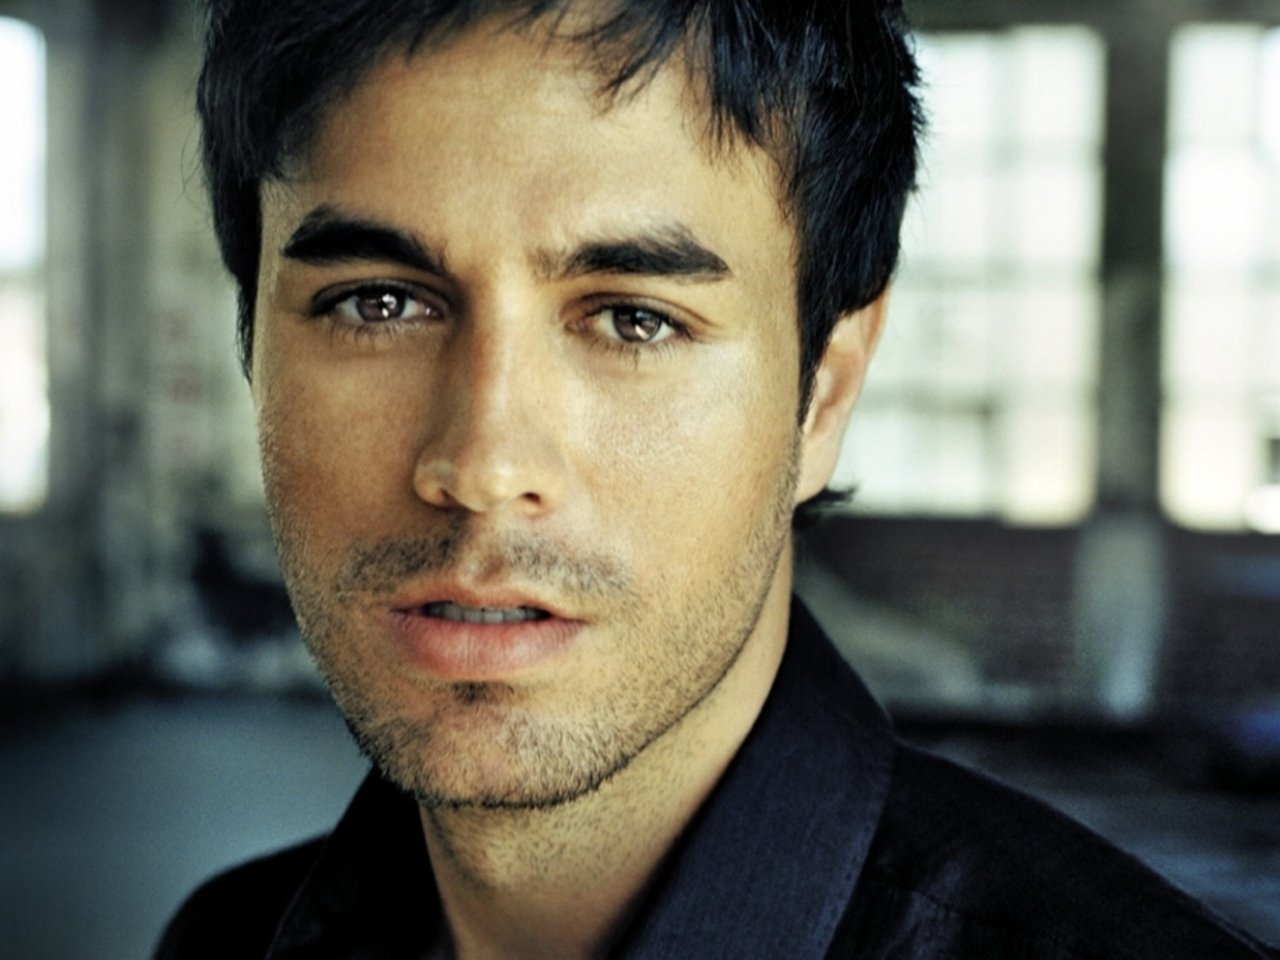 Iglesias Hot Wallpapers 2013 Enrique Iglesias HD Wallpapers 2013